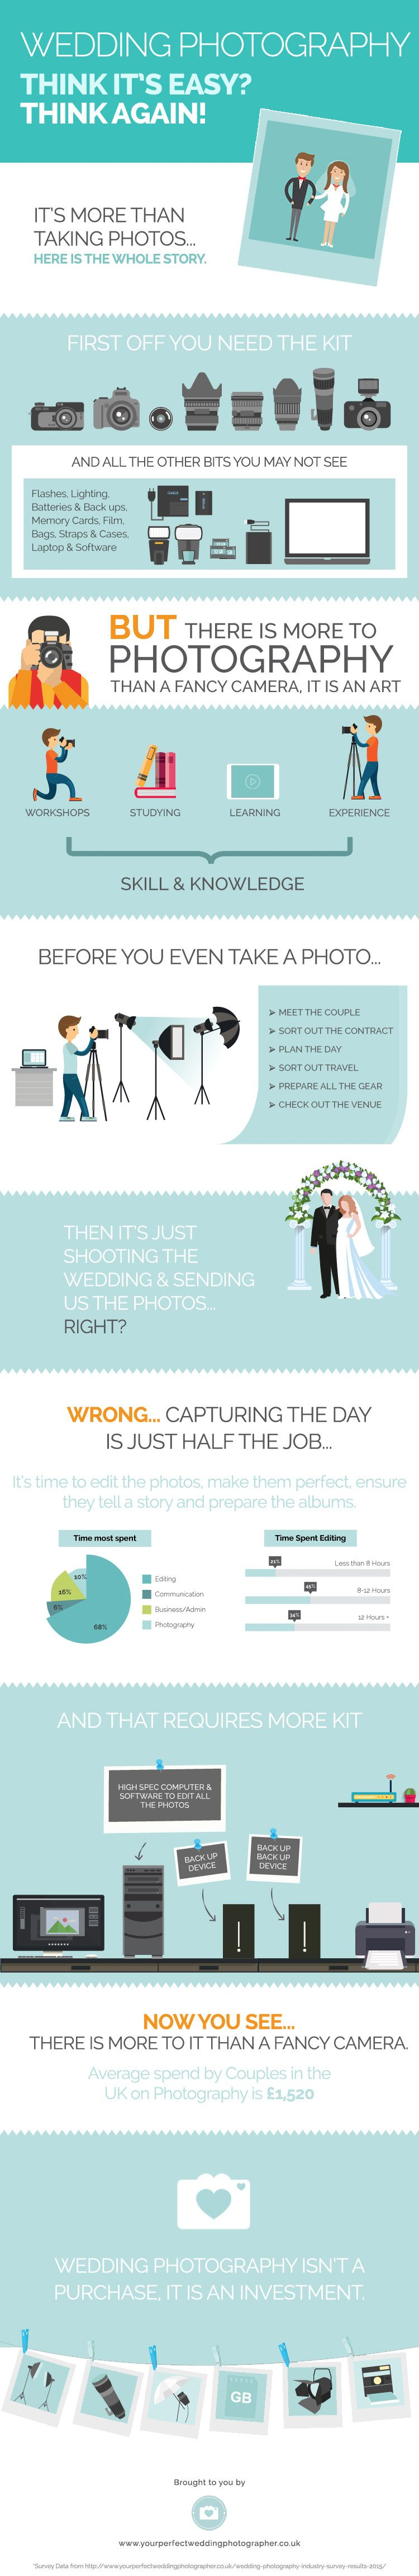 Image credit:  yourperfectweddingphotographer.co.uk